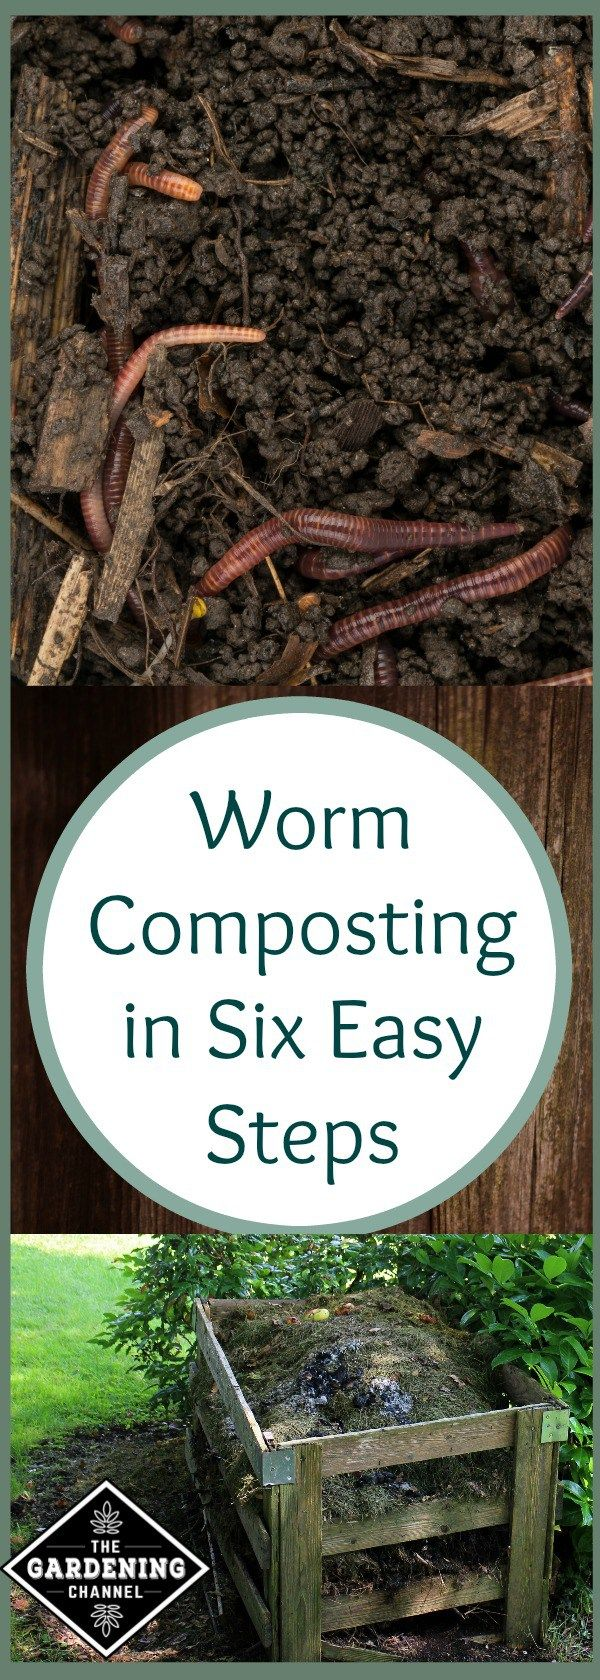 Worm composting can improve the quality of your soil and make your vegetable garden better than ever.  See how to do it in 6 easy steps